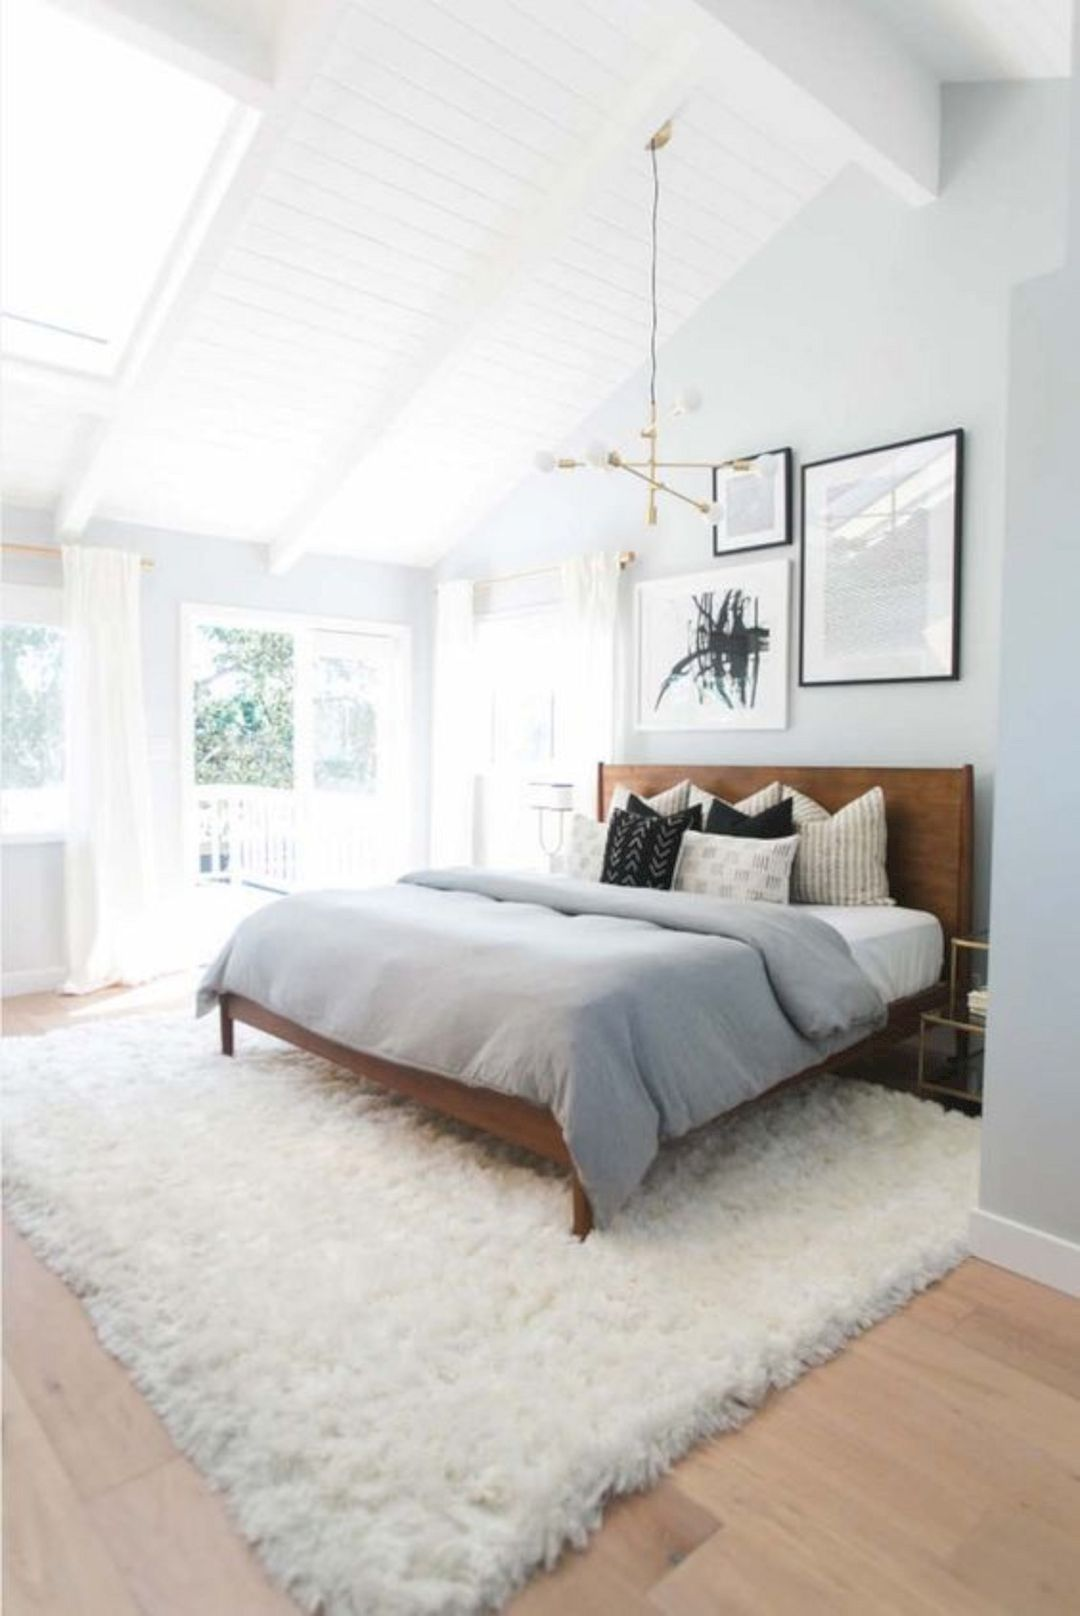 Spacious And Airy Bedroom Vaulted Shiplap Ceilings